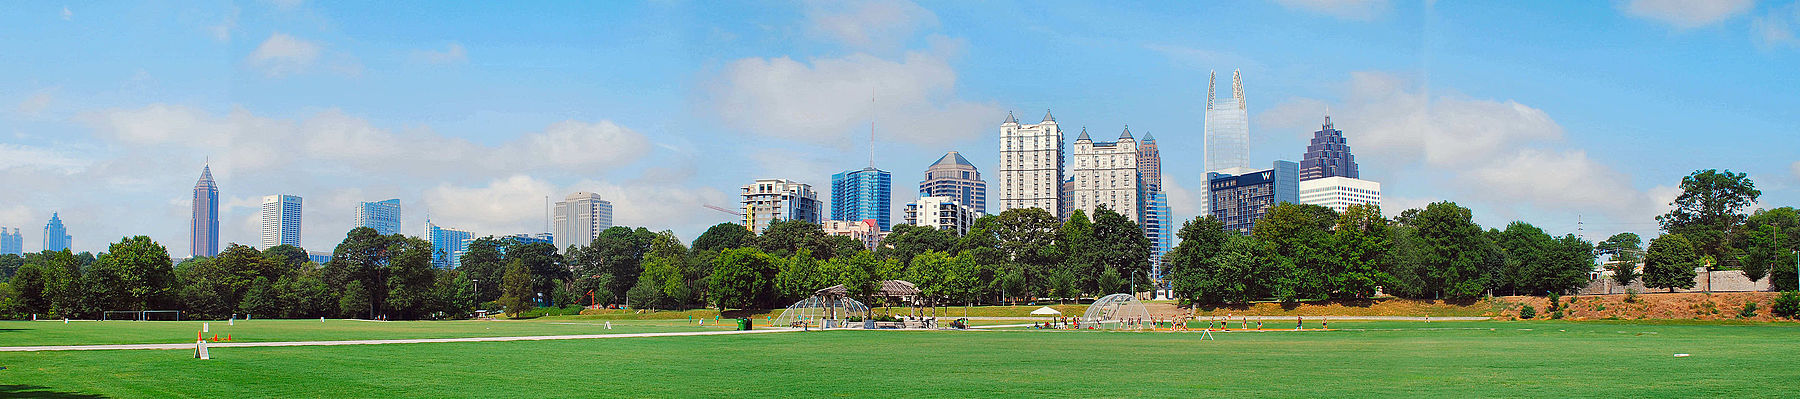 Atl skyline from Piedmont Park.jpg